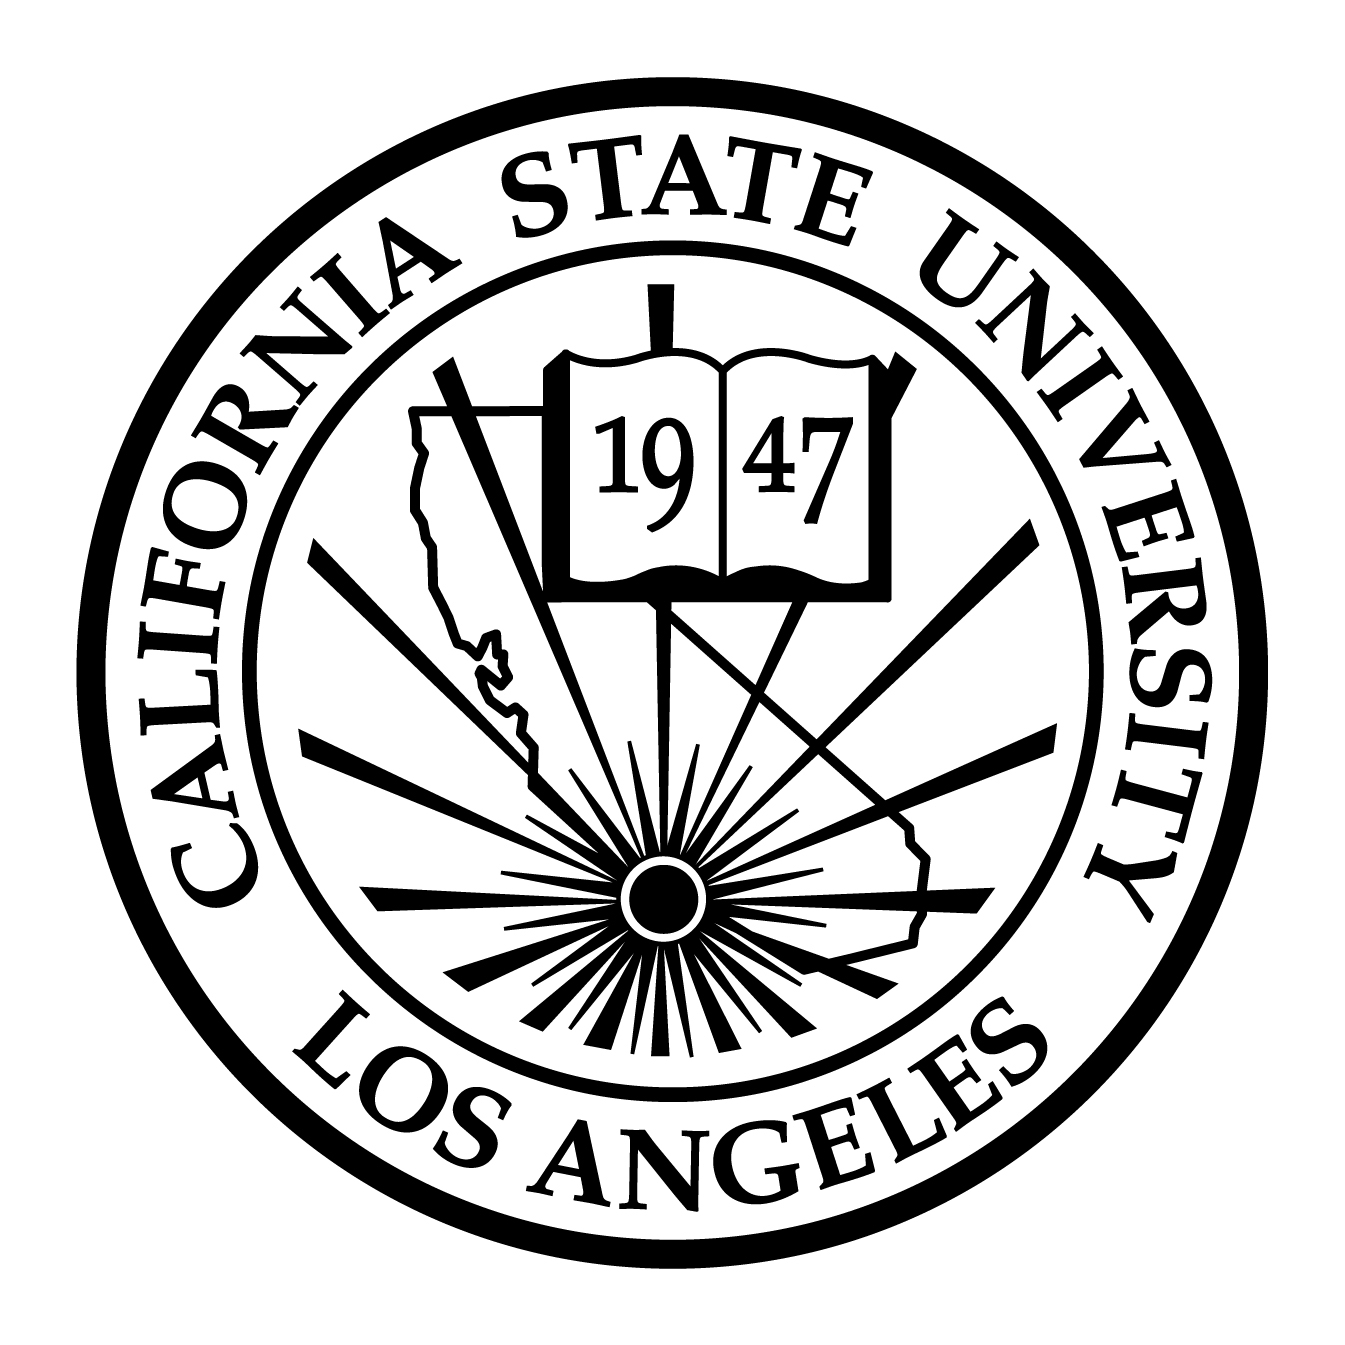 Cal state los angeles has notified 232 former students that a computer